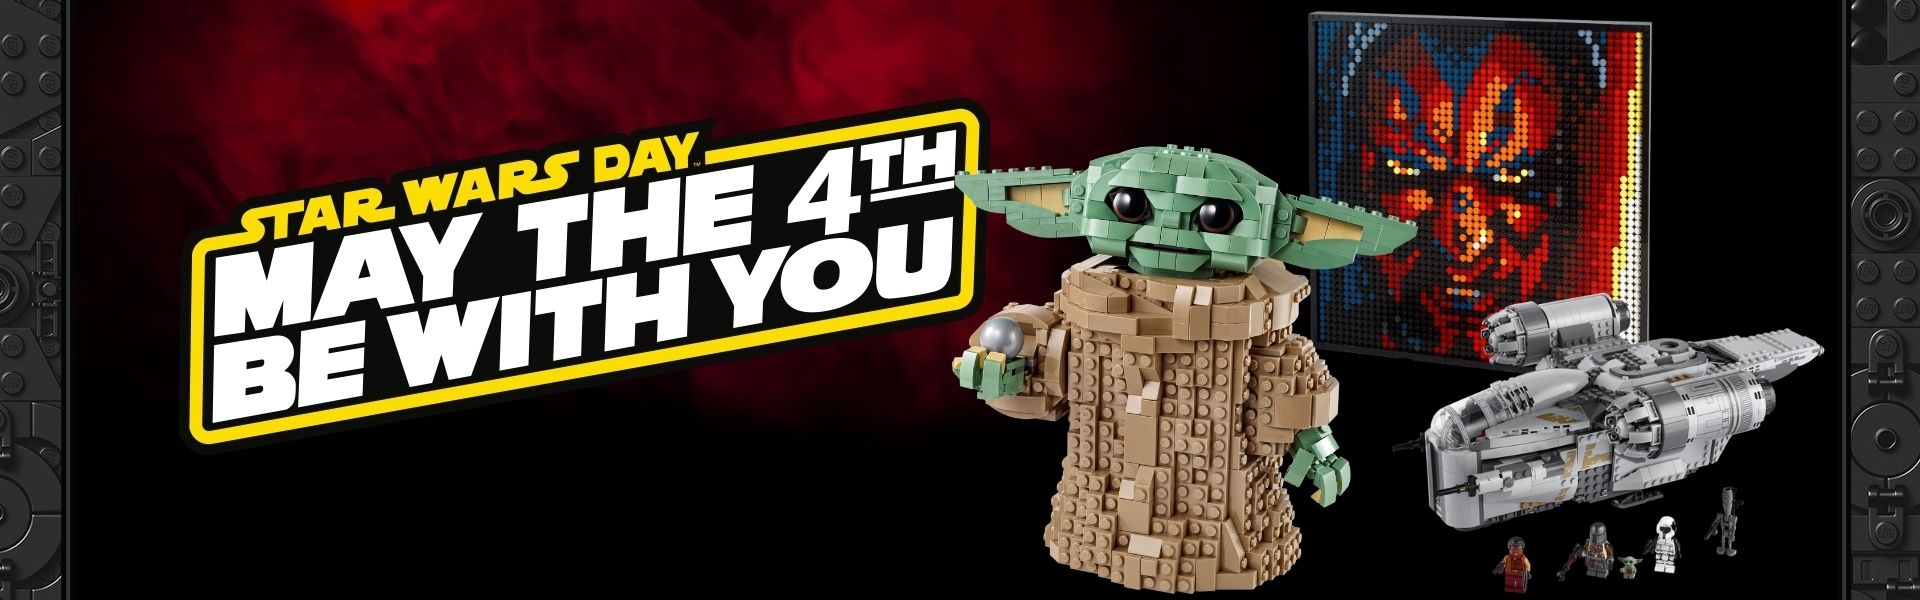 LEGO Star Wars May the 4th - adults